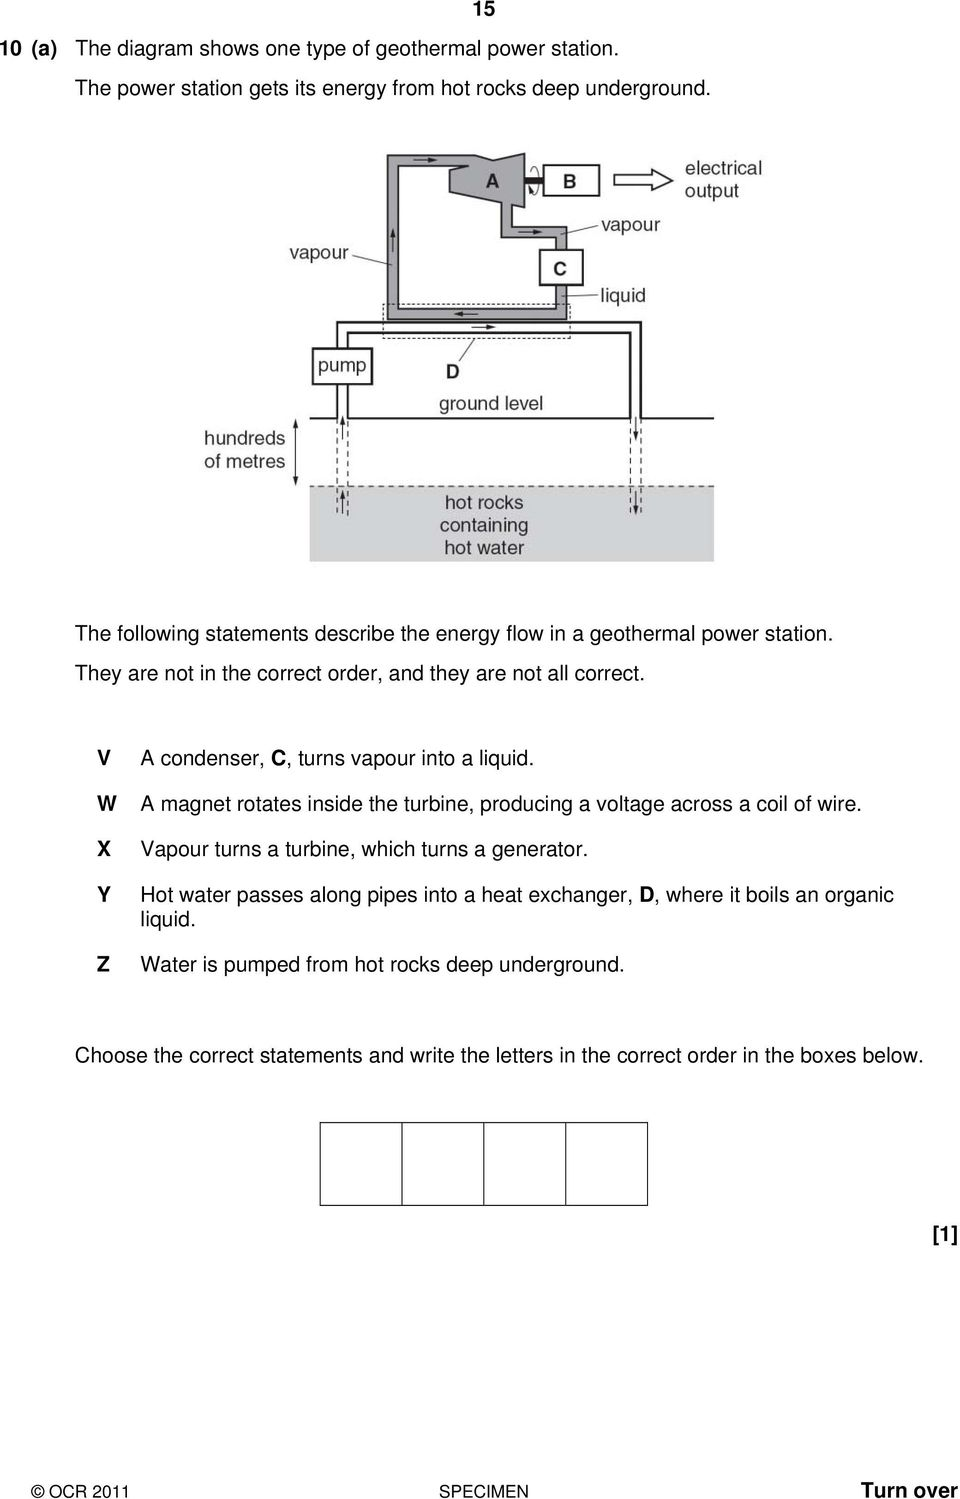 Specimen Twenty First Century Science A181 02 Physics A General Geothermal Power Plant Block Diagram V W X Y Z Condenser C Turns Vapour Into Liquid Magnet Rotates Inside The